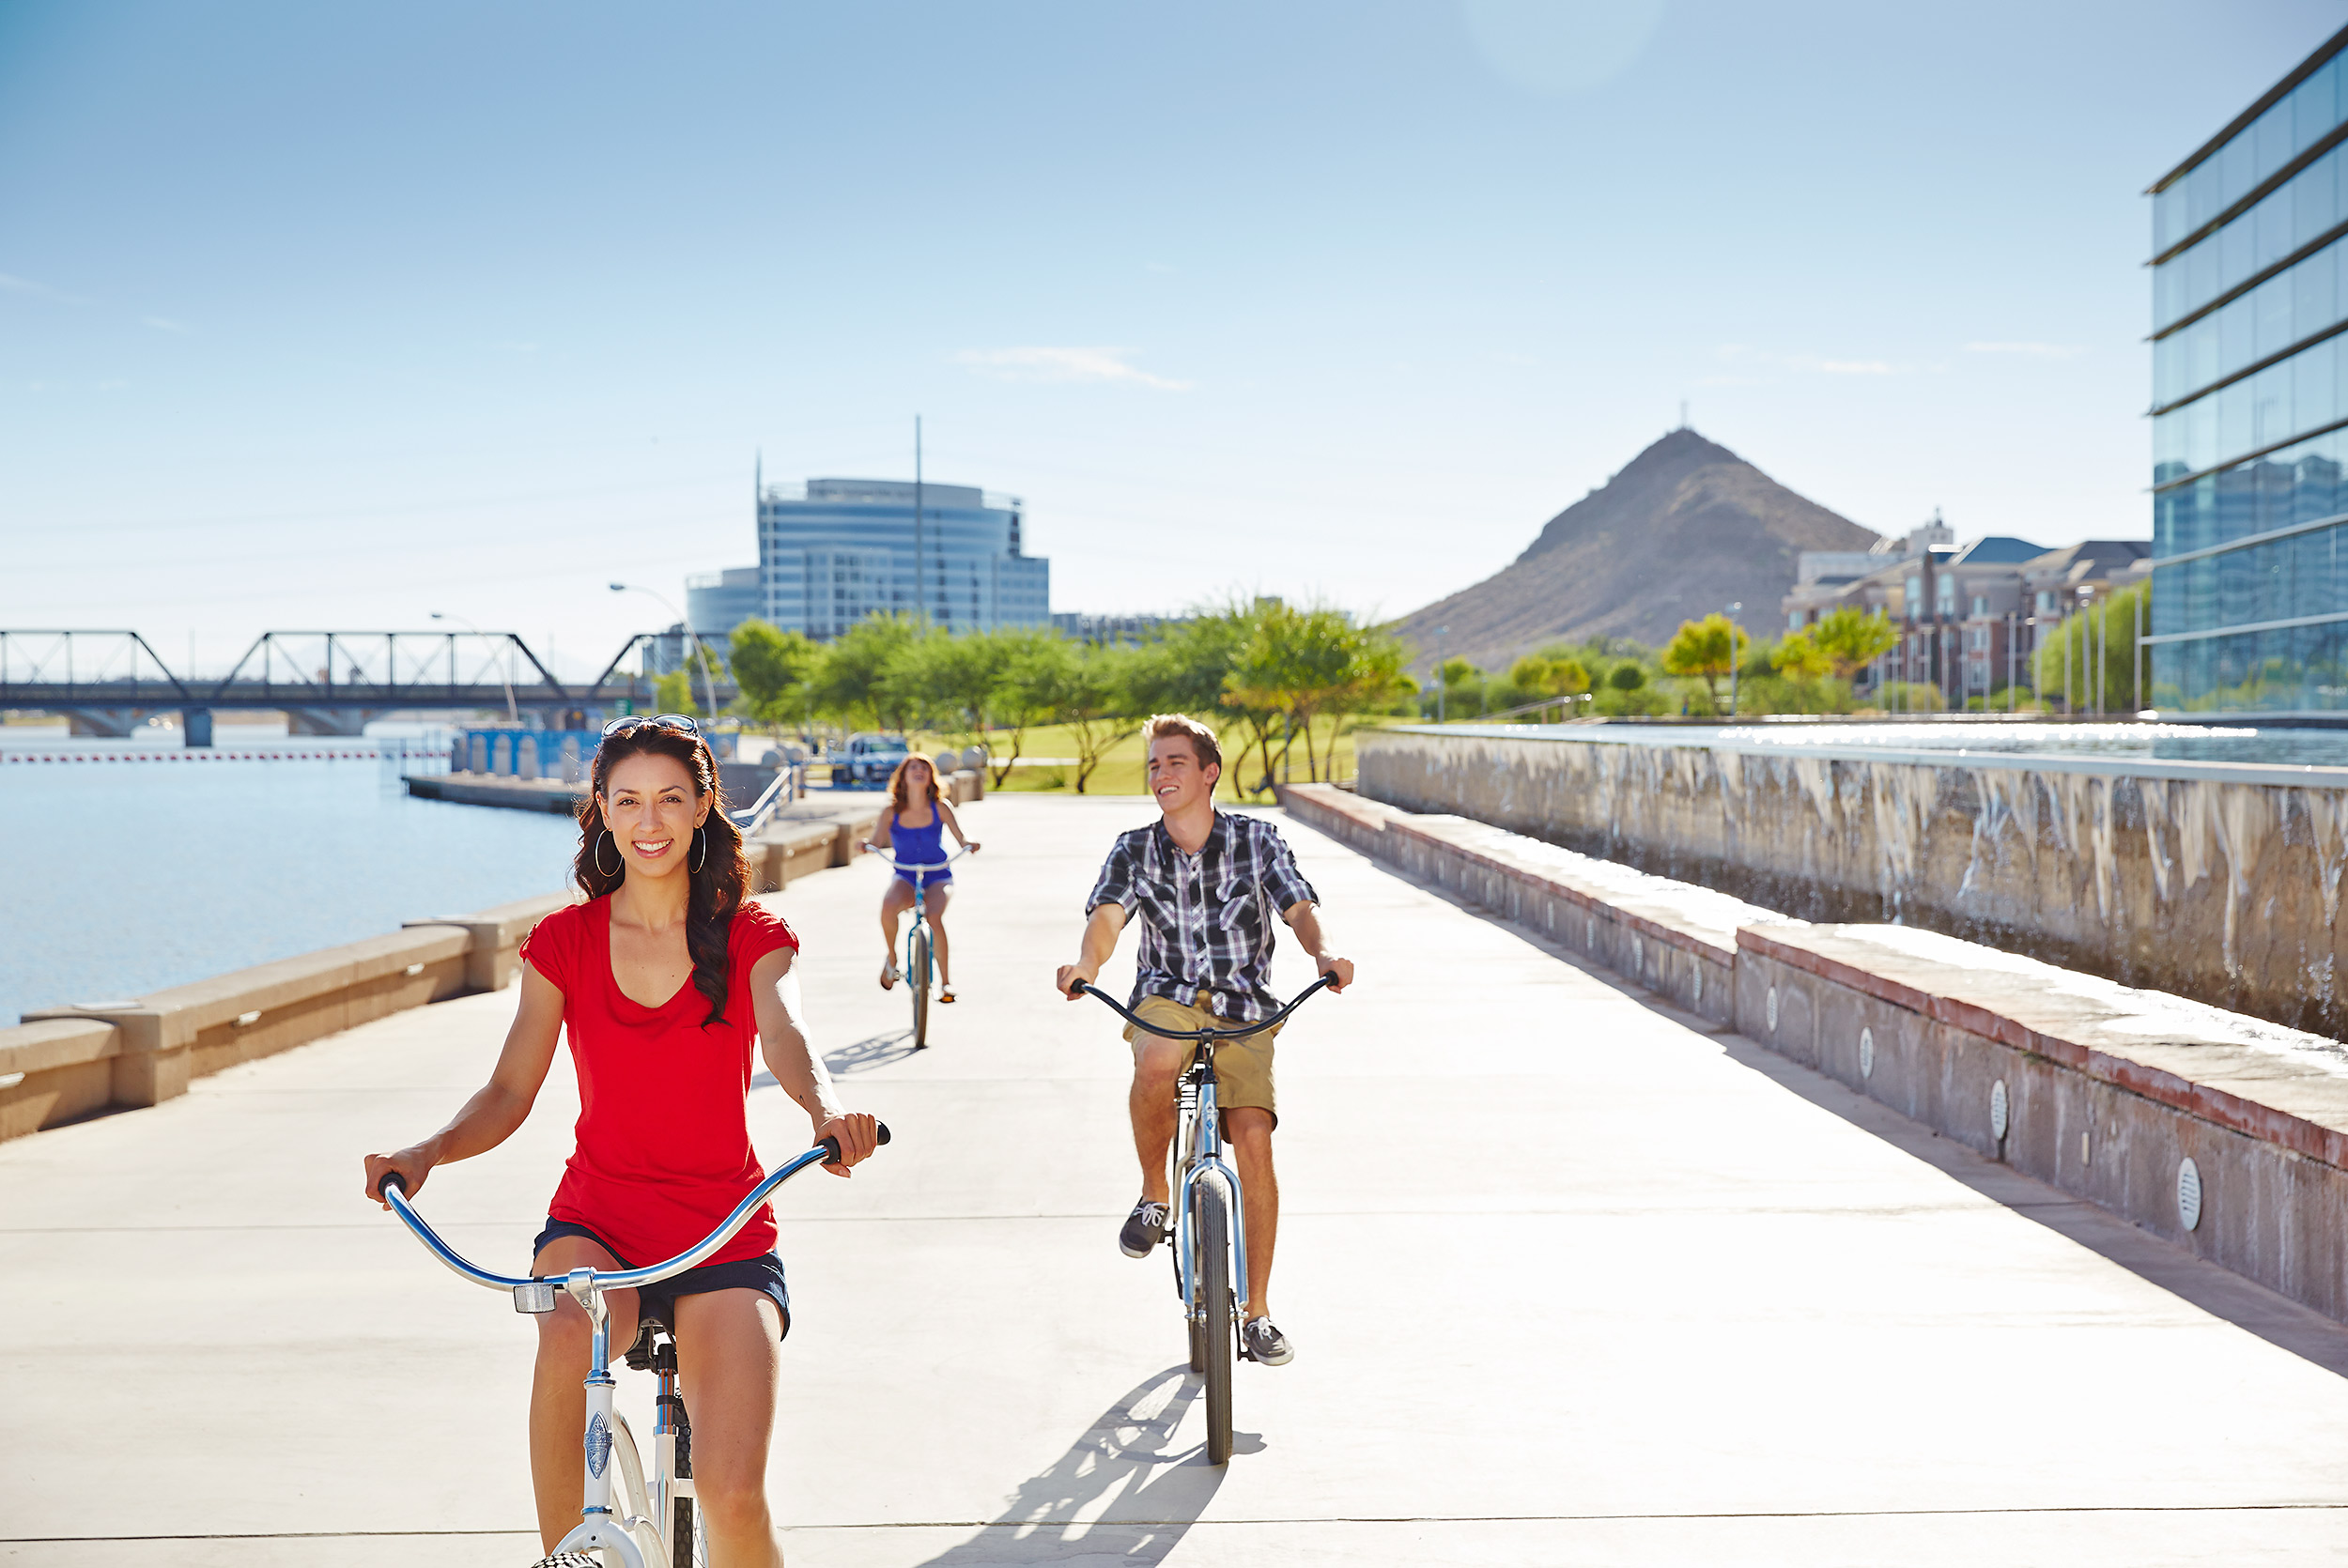 Tempe Tourism Biking - Steve Craft Photography - Phoenix Arizona Commercial Photographer